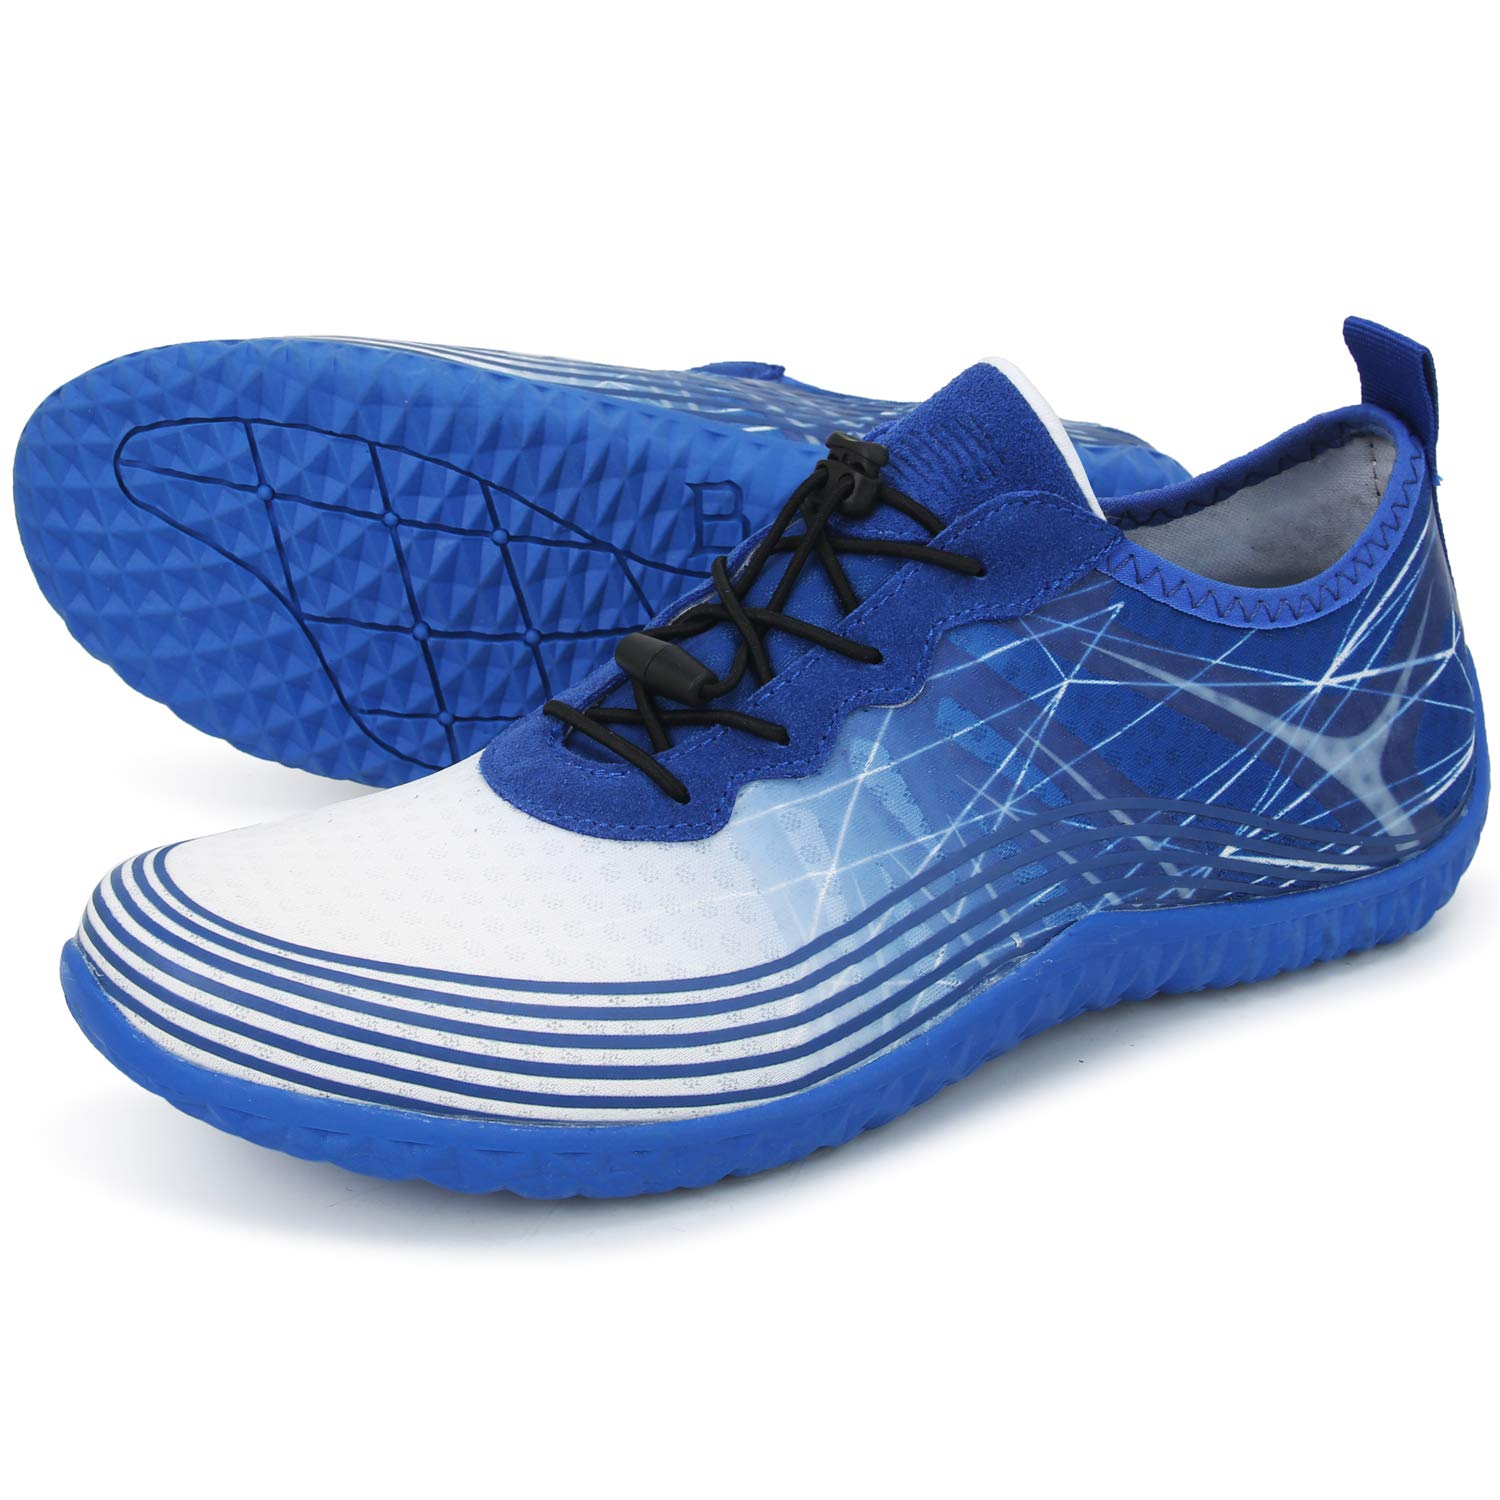 Barerun Womens Mens Water Shoes Quick Dry Barefoot Aqua Shoes for Swimming Diving Surfing Boating Walking Beach Yoga